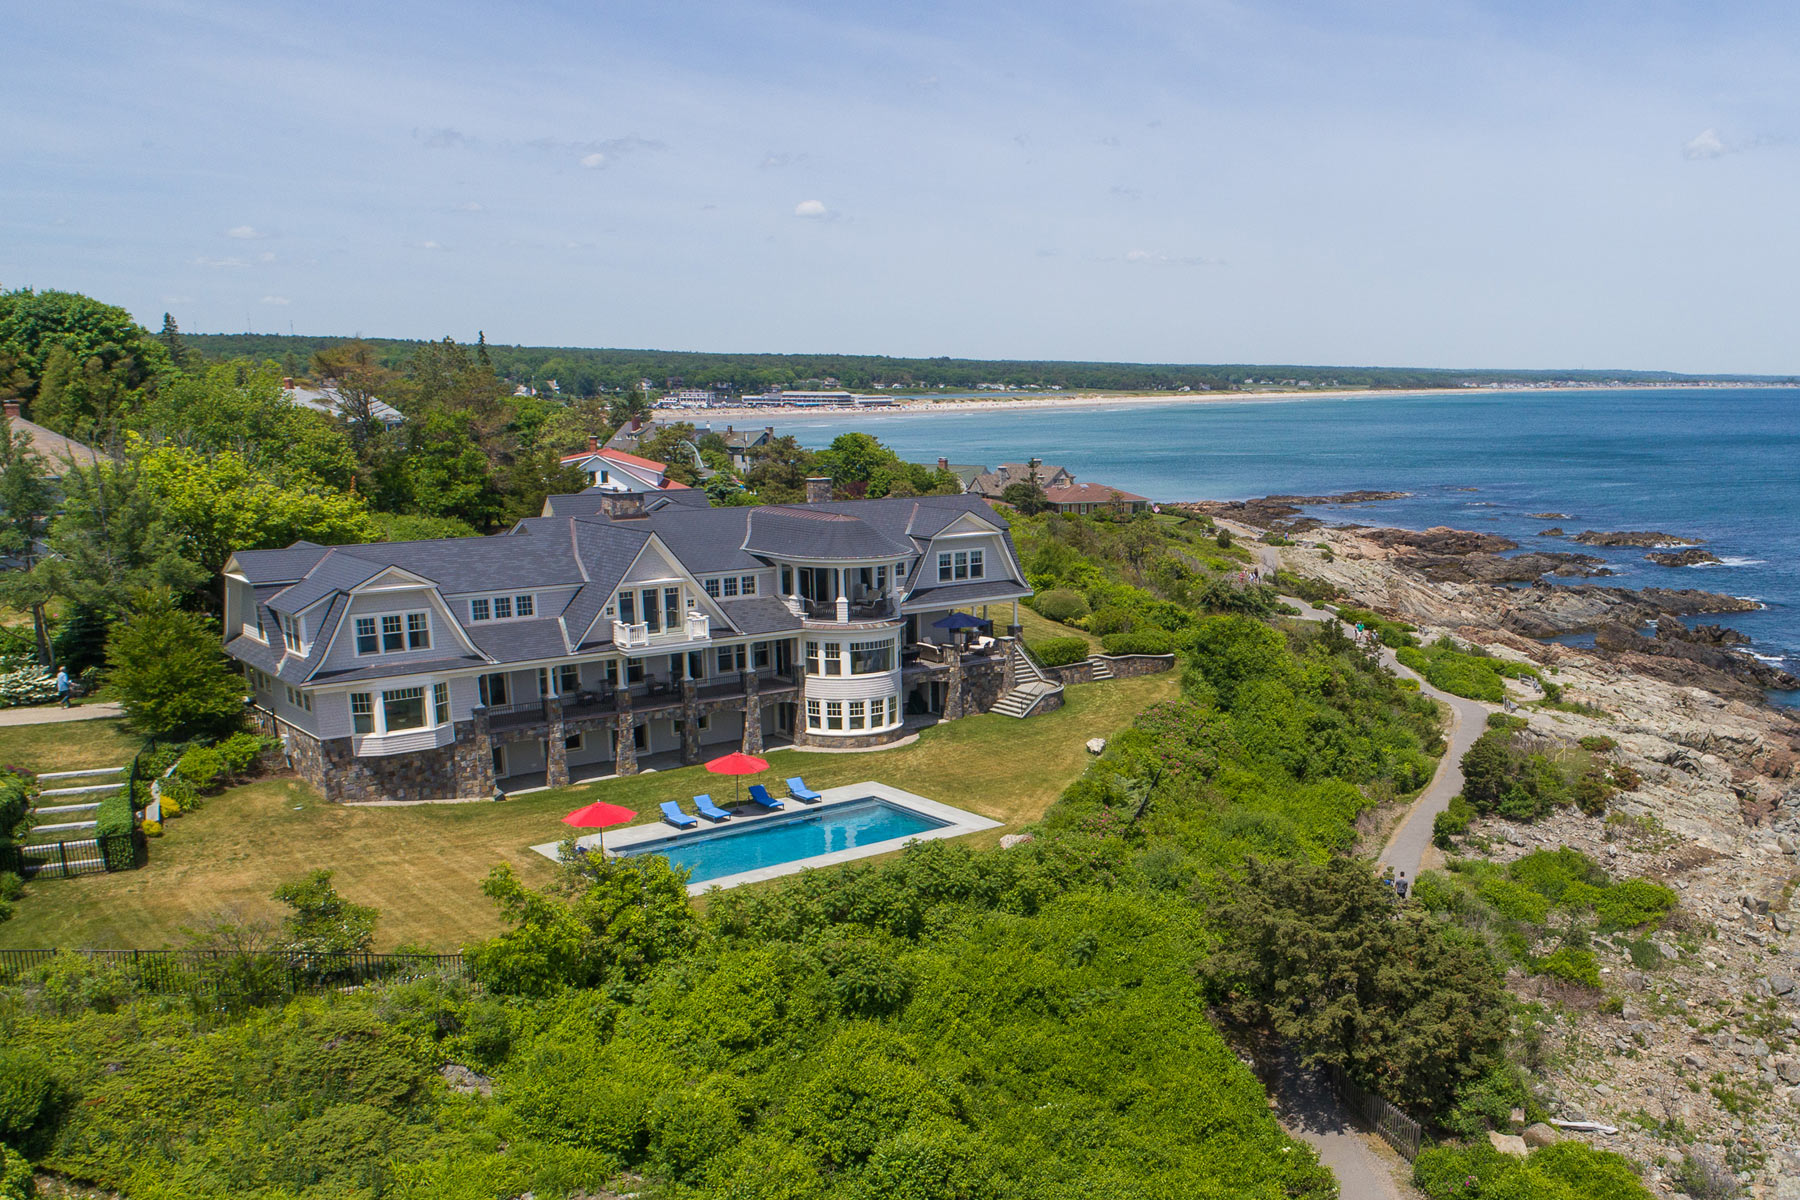 Grand Residence on 1.29 Acres on the Marginal Way with Unrivaled Ocean Views 144 Frazier Pasture Road Ogunquit, Maine 03907 Estados Unidos